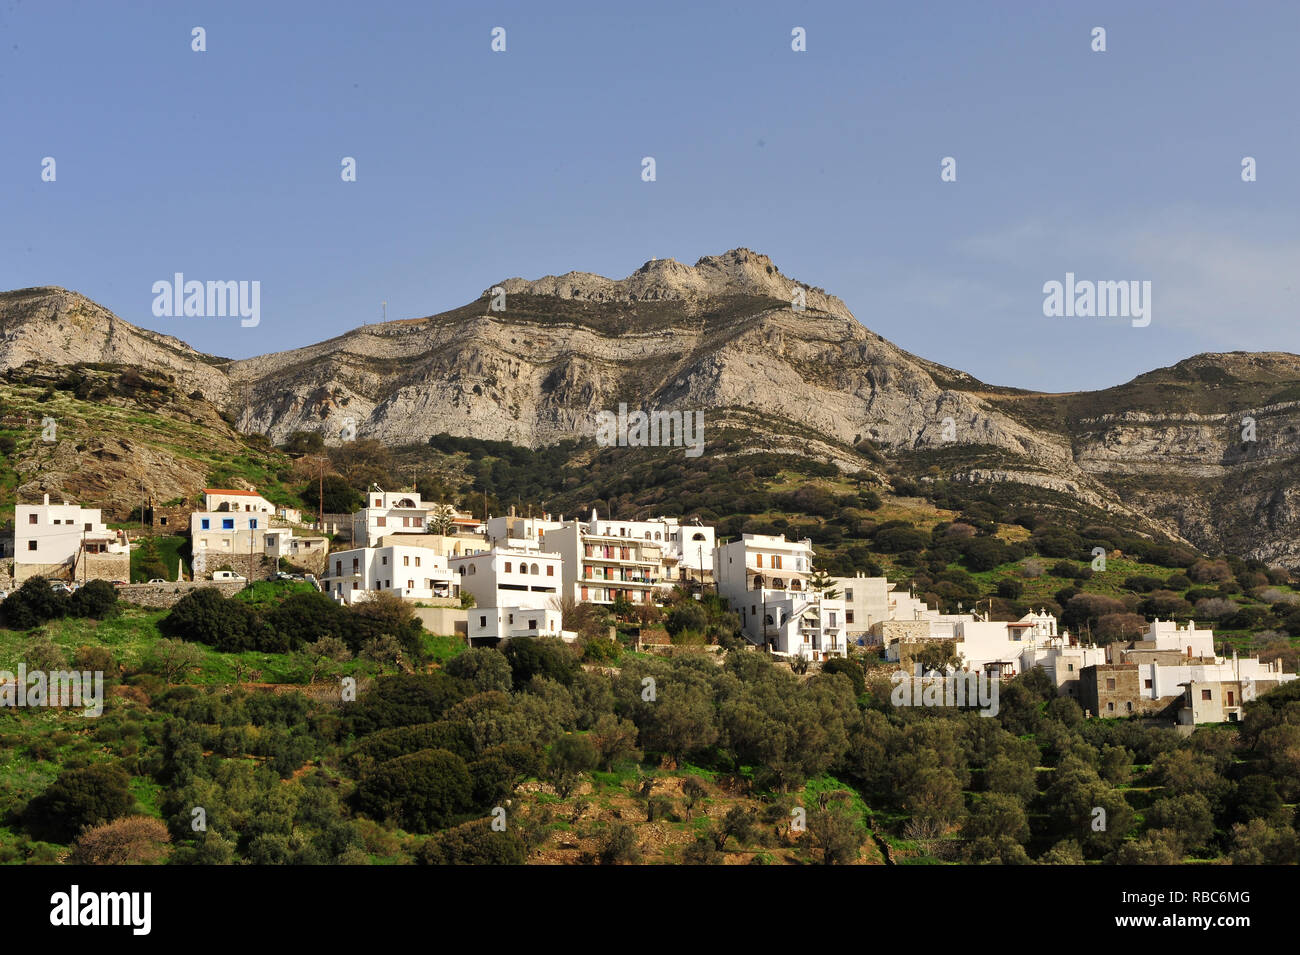 Traditional village on Naxos island, Cyclades, Greece - Stock Image